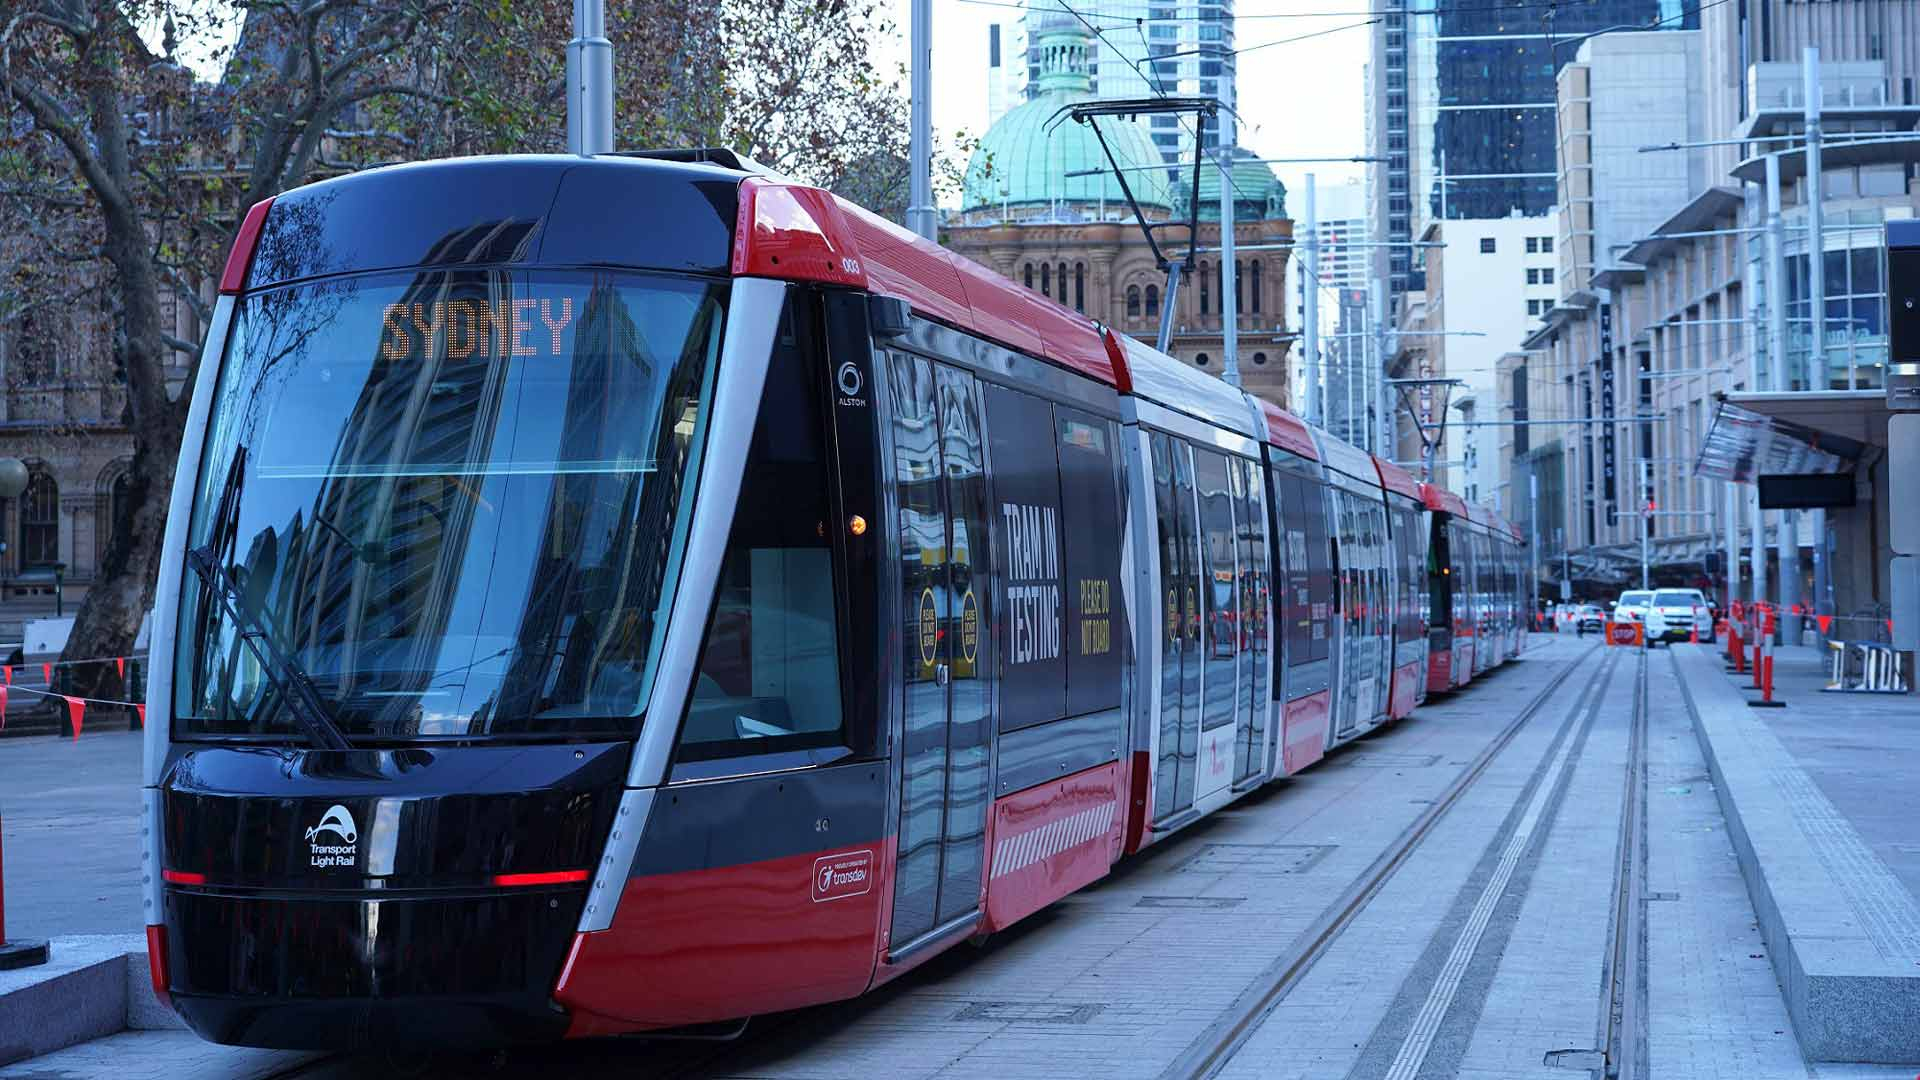 The South East Light Rail Will Be Up and Running by the End of 2019 (Supposedly)